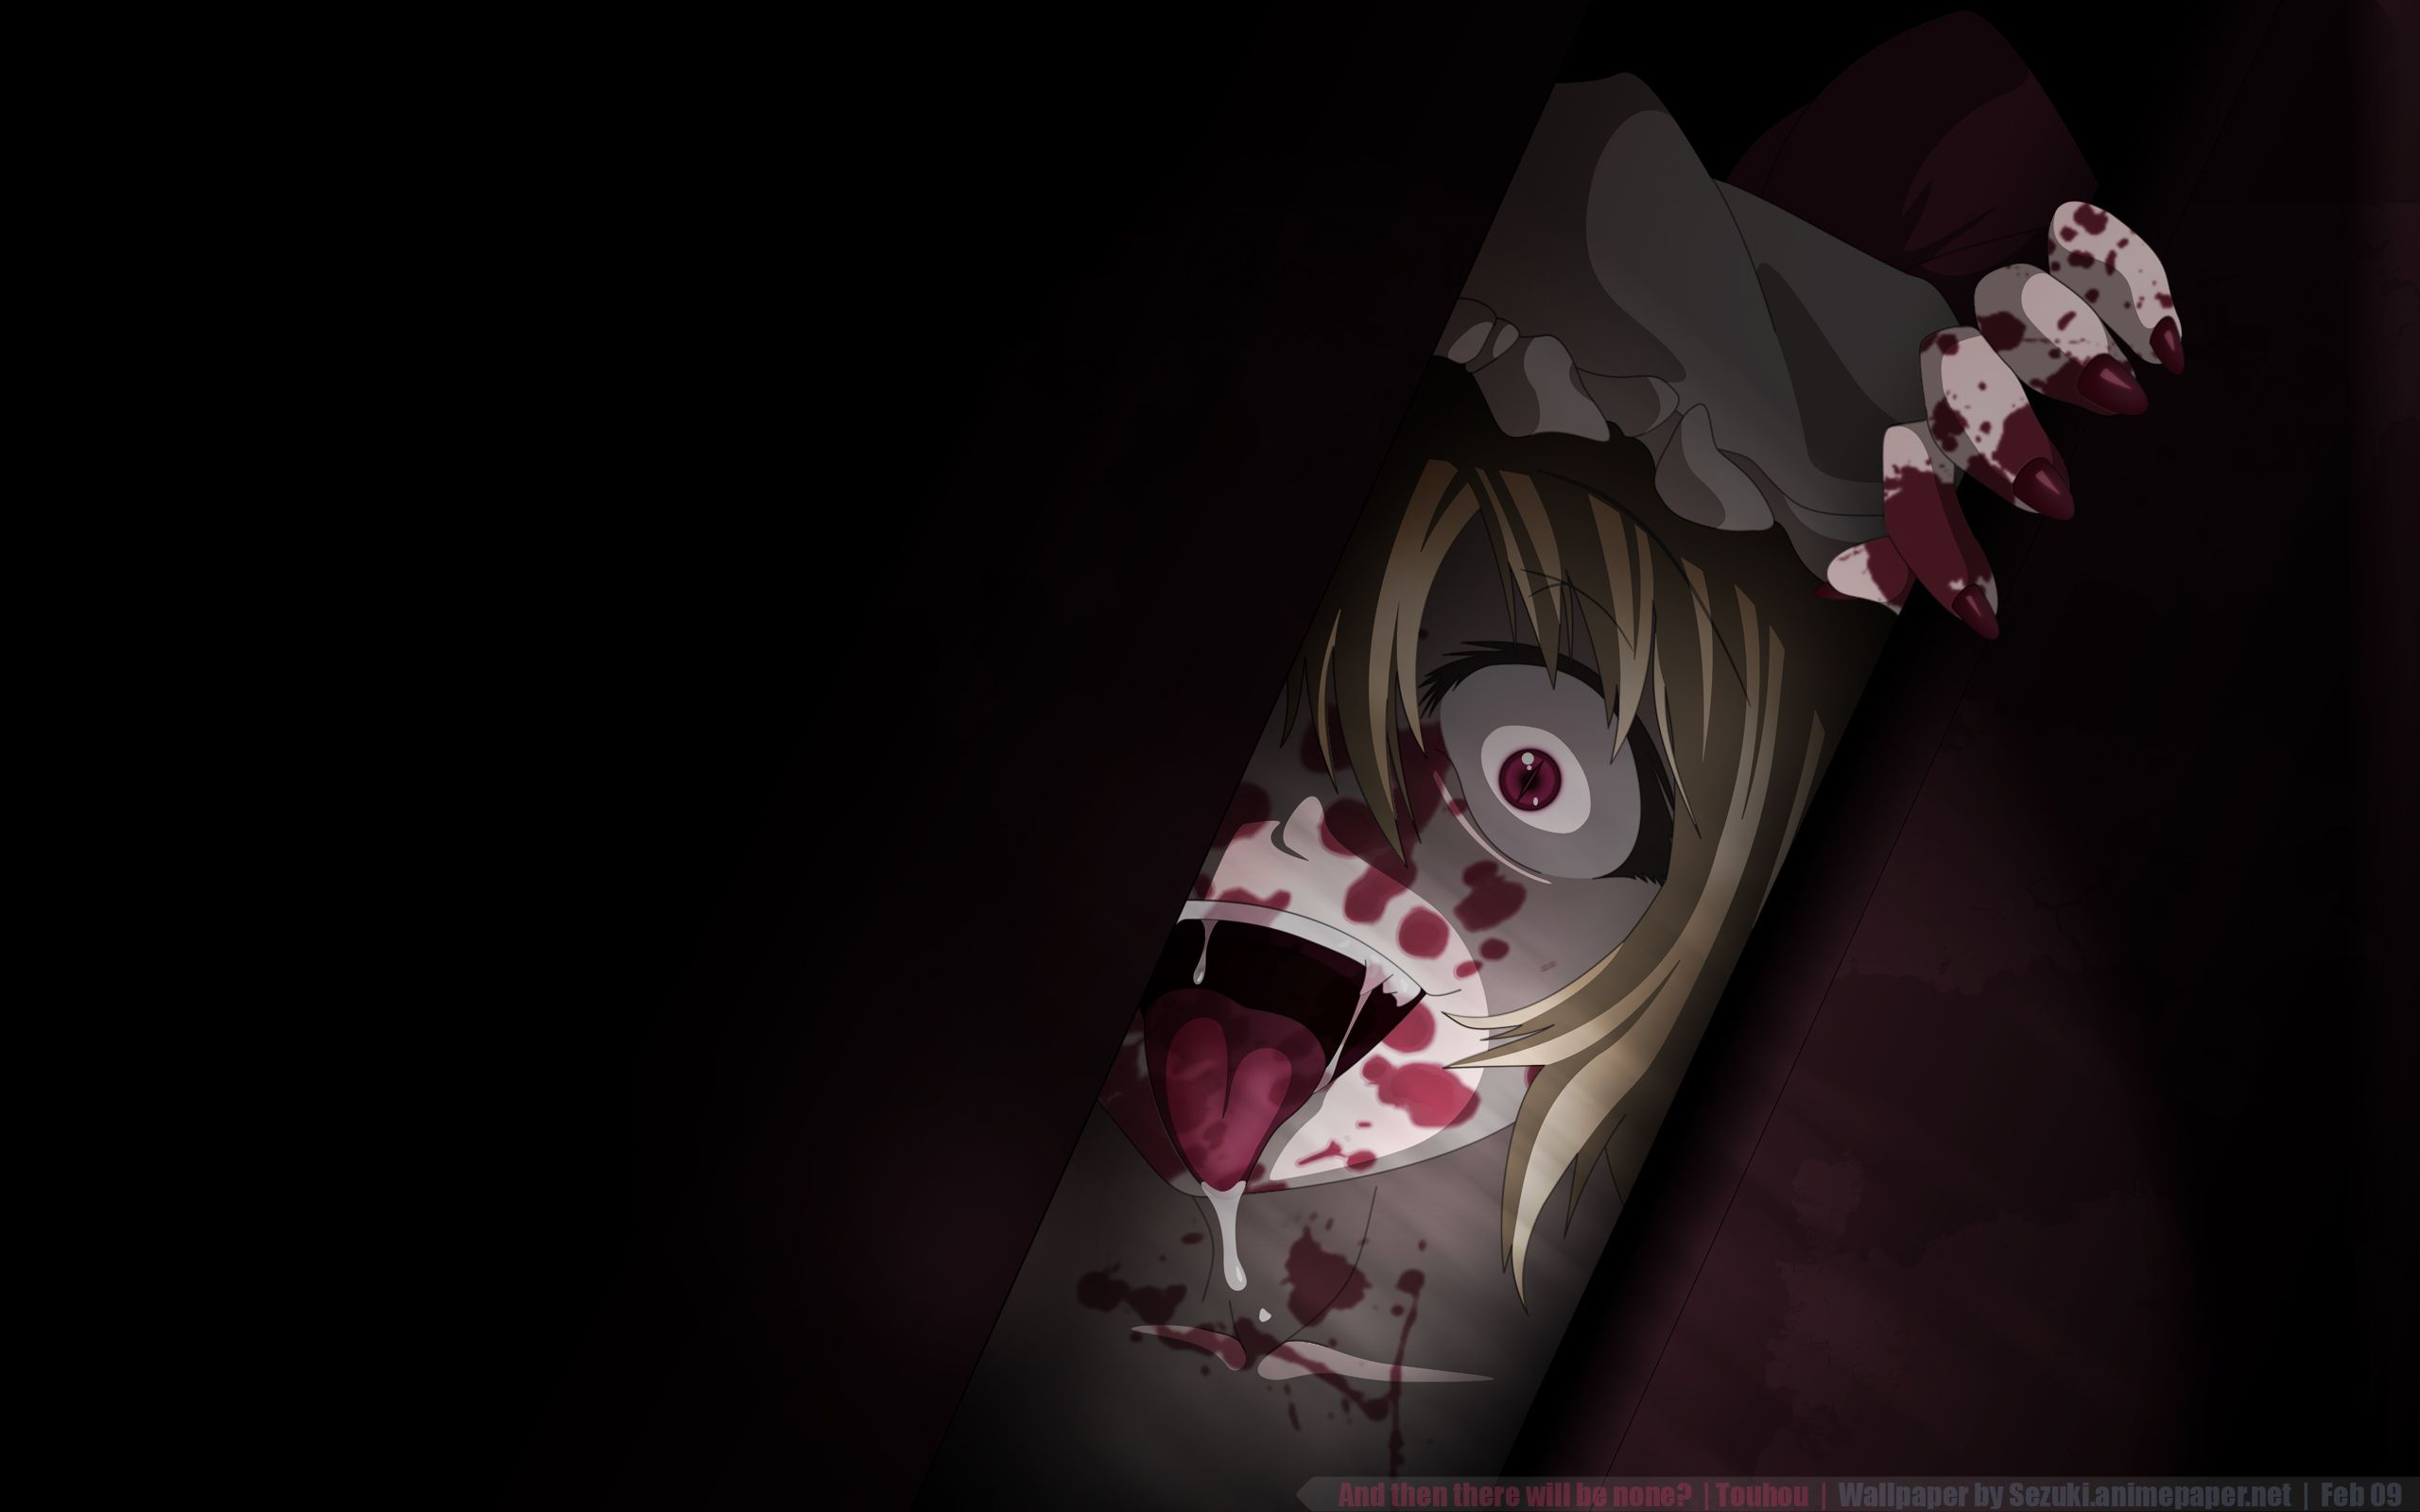 Creepy Anime Wallpapers For Iphone Amazing Wallpapers